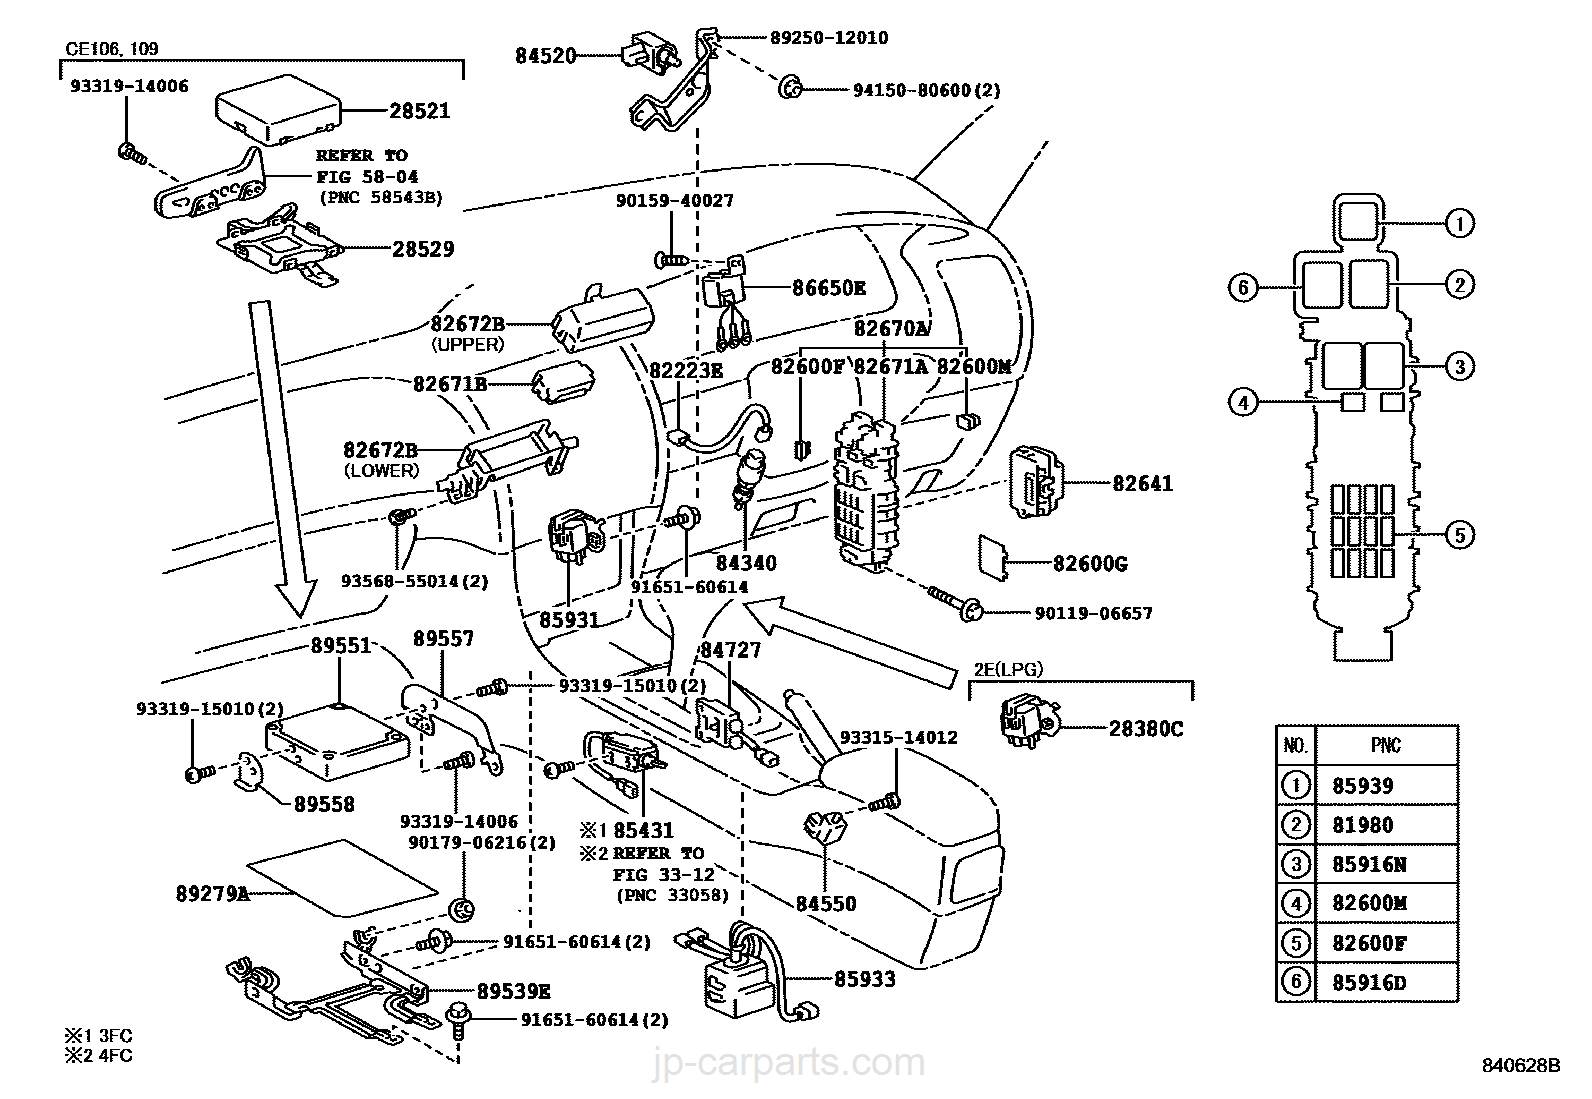 Toyota Yaris Stereo Wiring Diagram likewise Ansul System Wiring Manual furthermore My Turbo 4afte Corolla Toyota Nation Forum Toyota Car And Truck in addition 2002 Toyota Corolla Electrical Wiring Diagram Manual further 4afe Engine Number Location. on wiring diagram toyota starlet 97